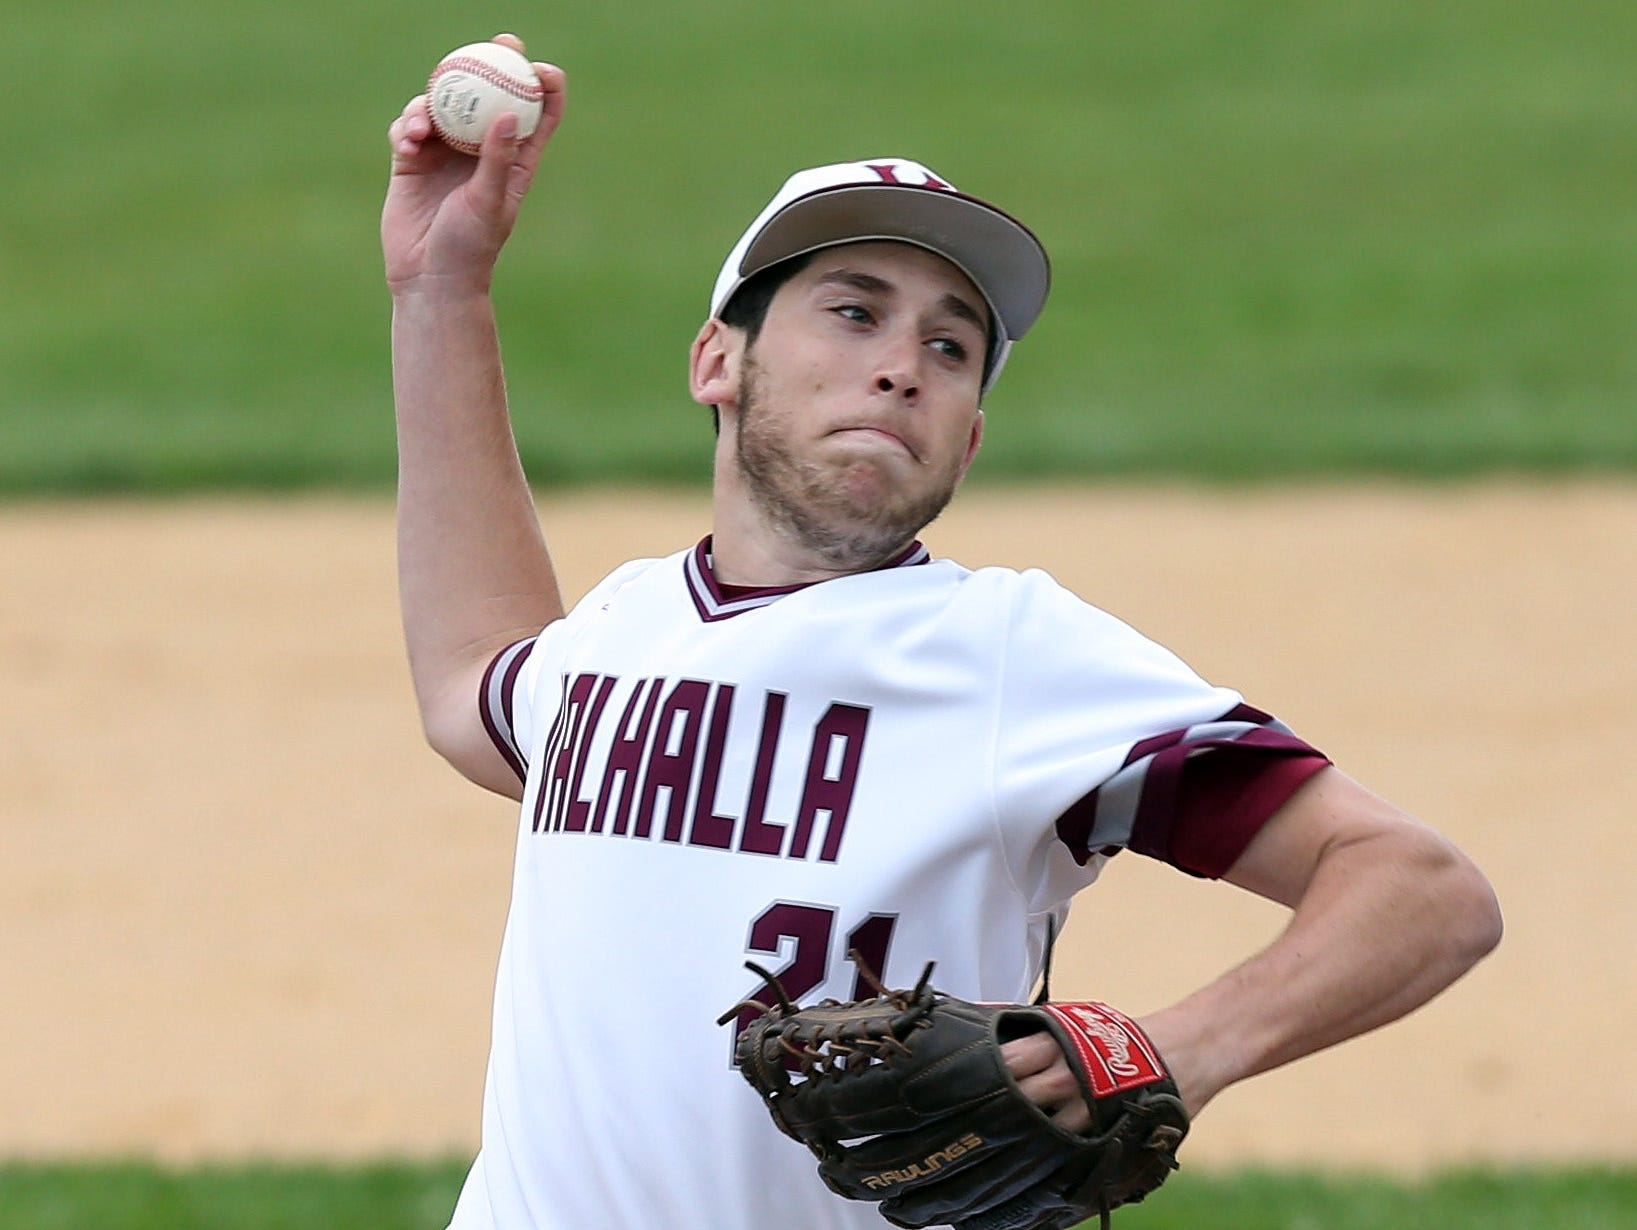 Valhalla's Jason Wolfthal pitched a 4-0 shutout against Westlake Tuesday at Valhalla High School.